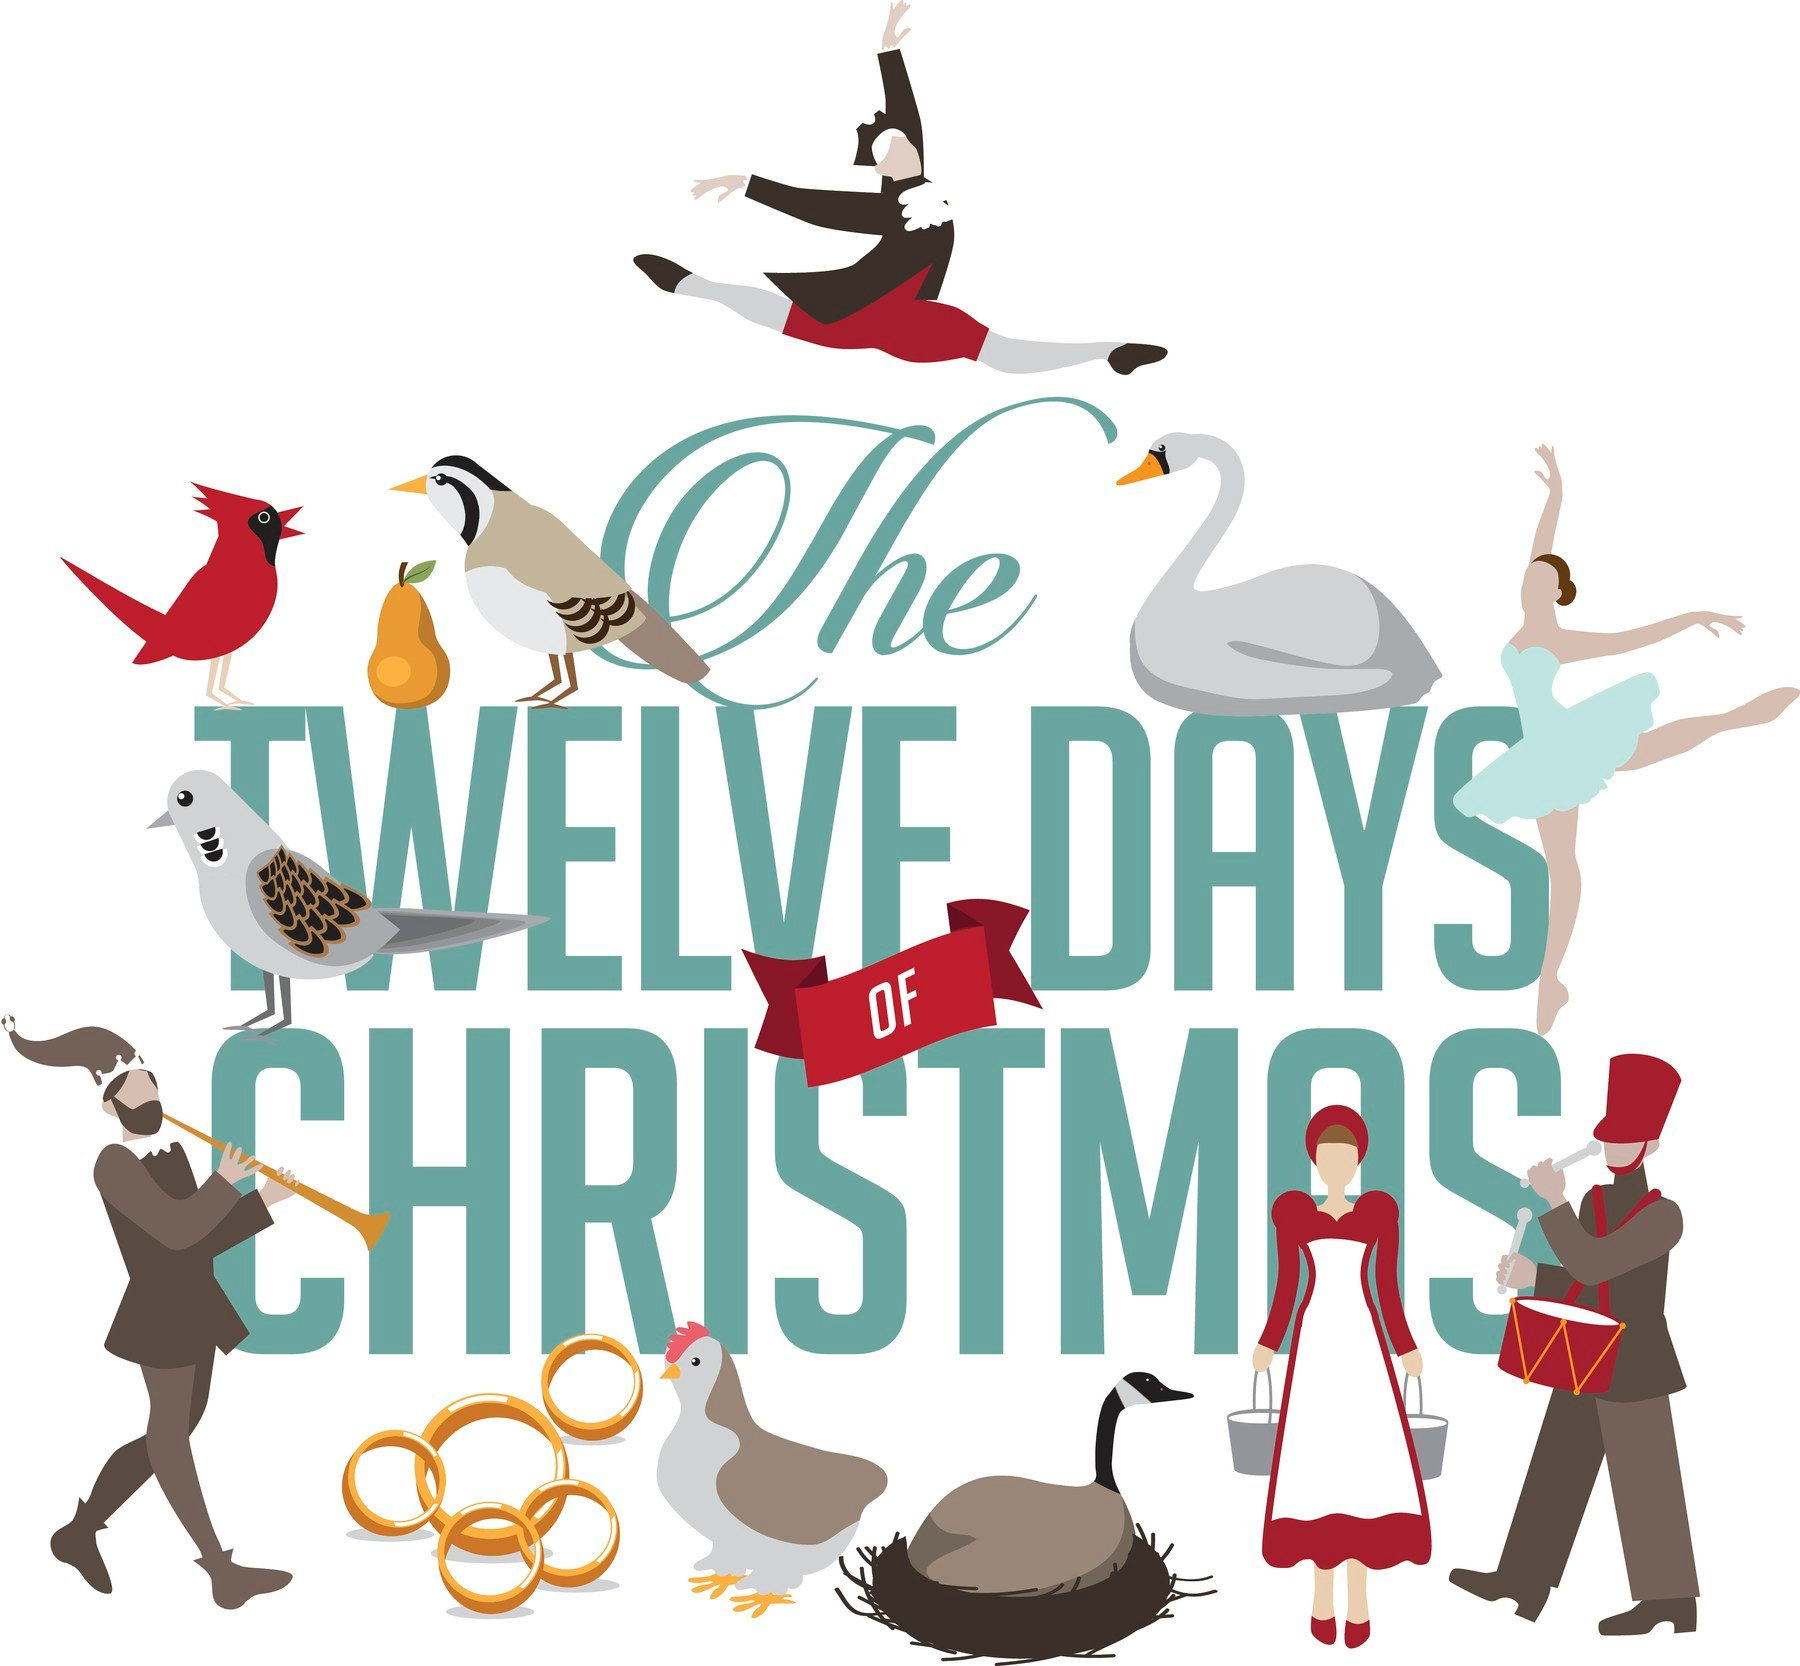 Total gifts in the twelve days of christmas song